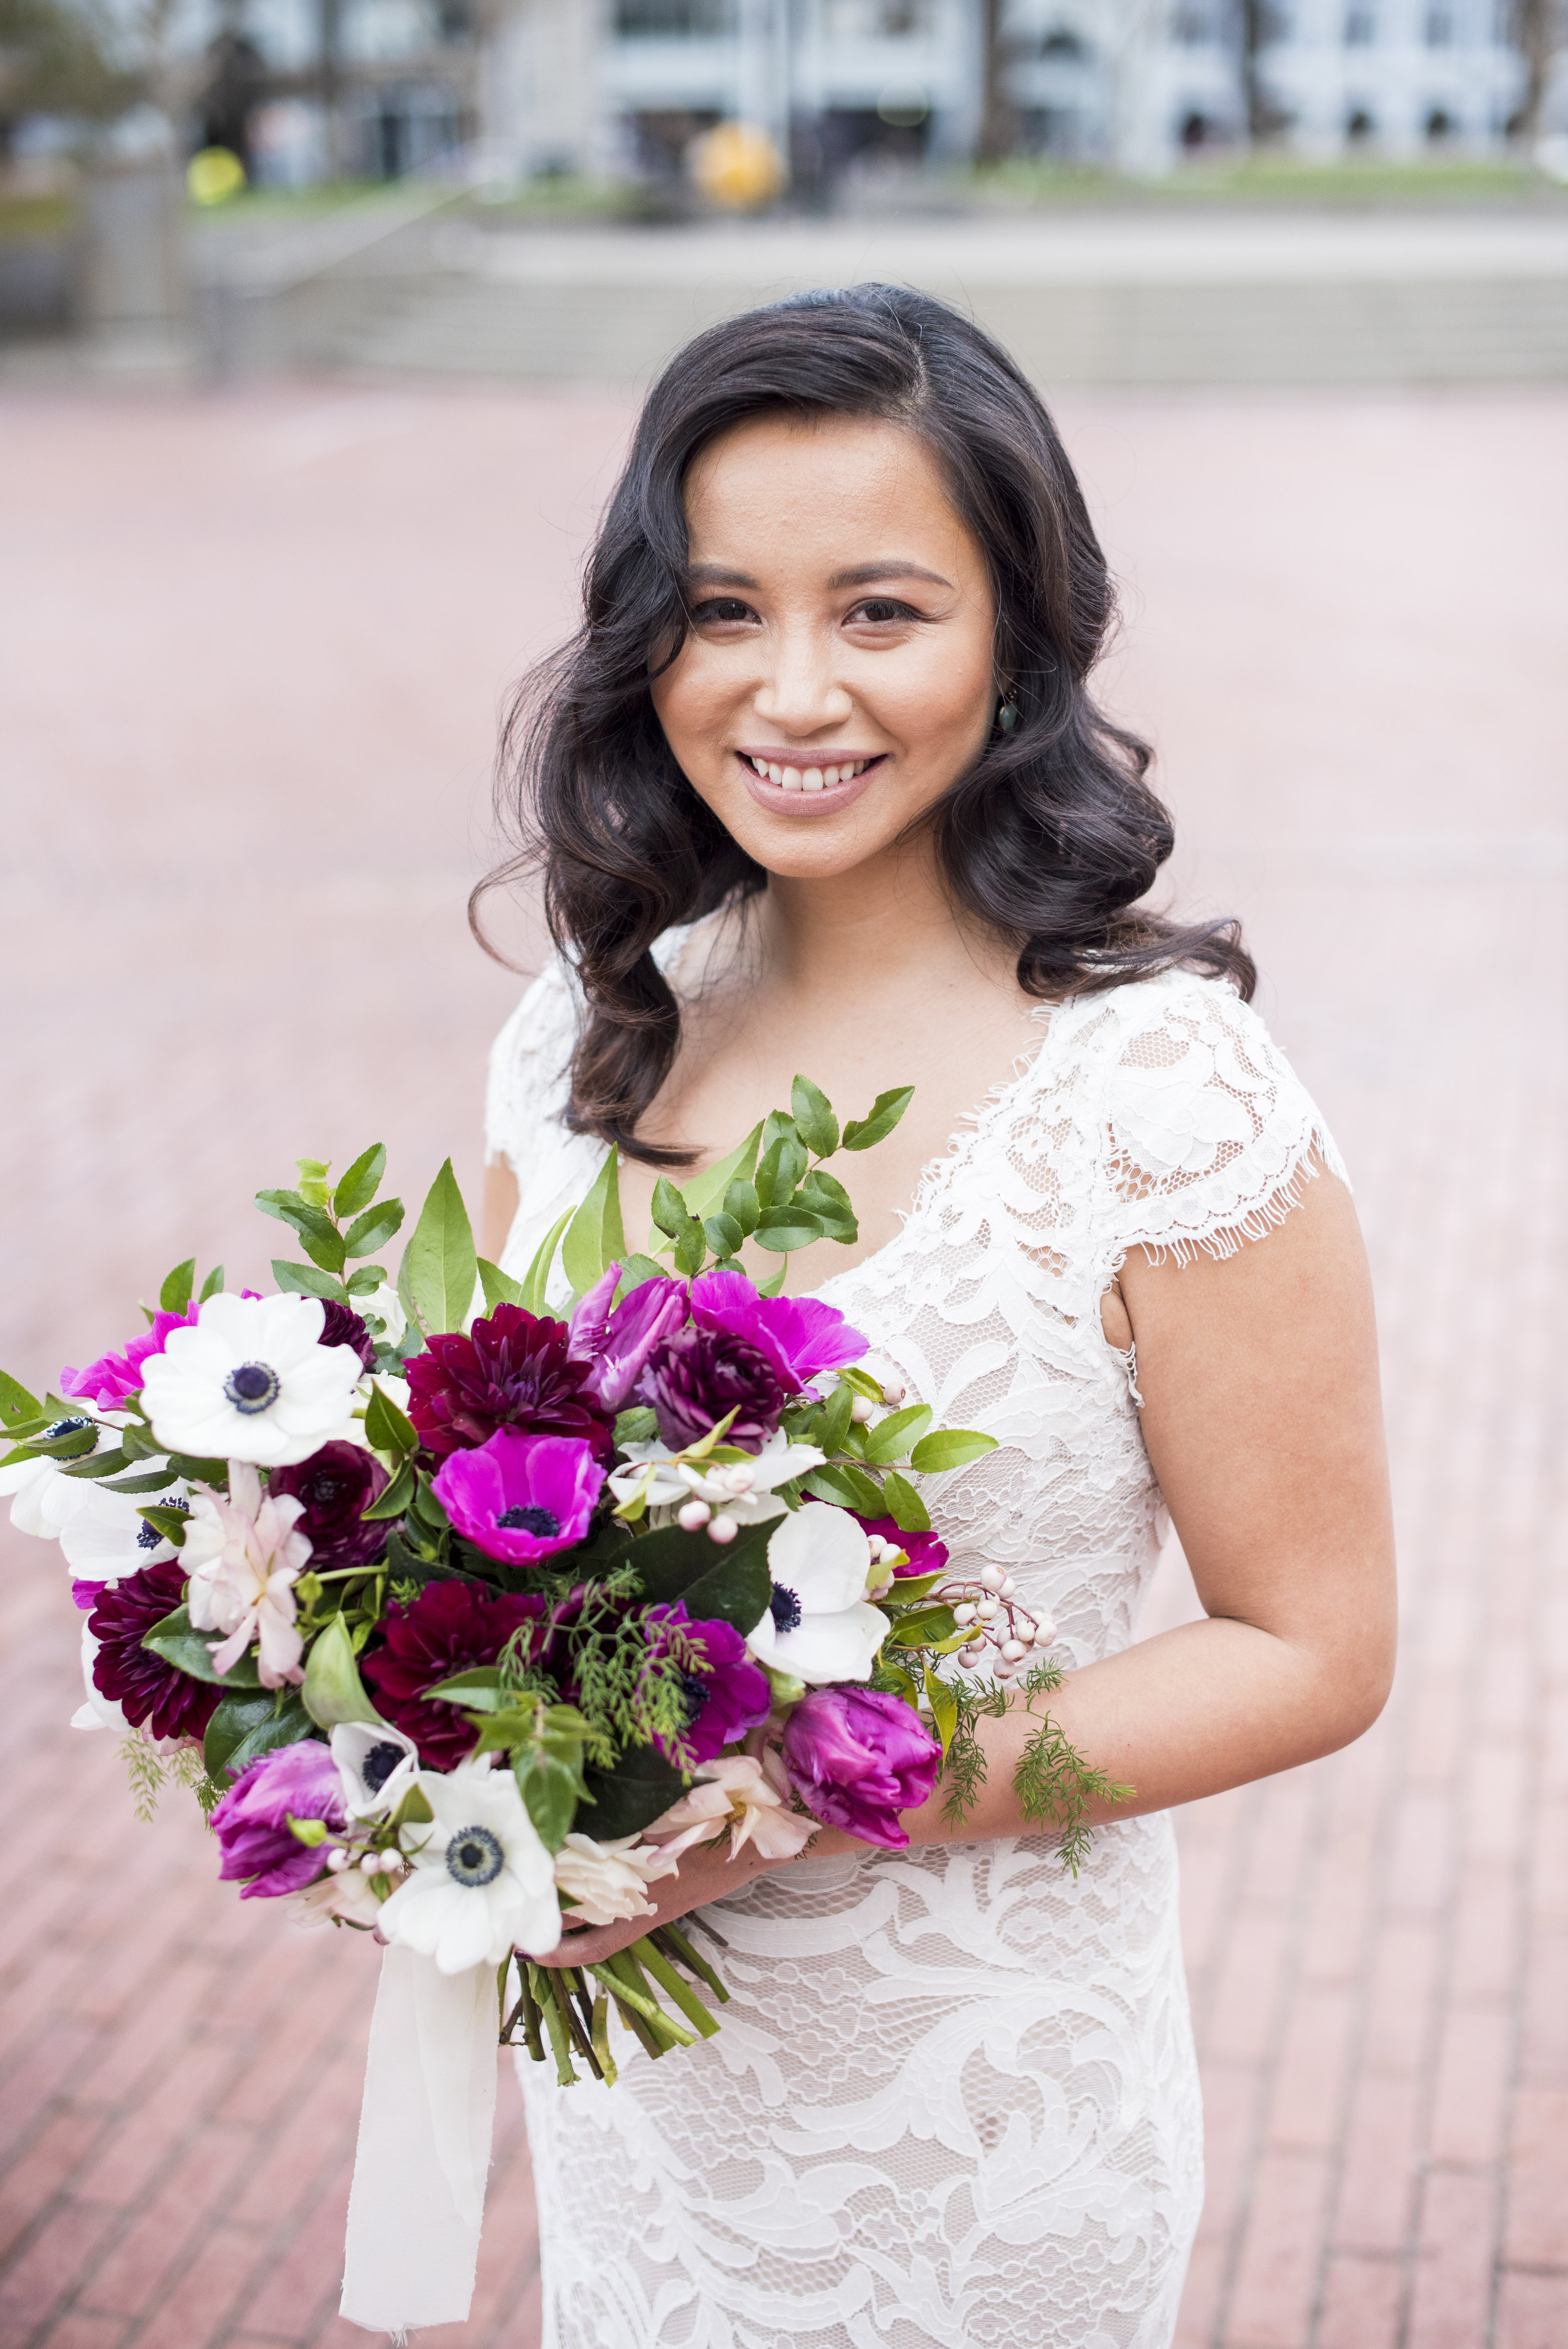 """""""100% recommend her talent and warm personality for any Bay Area bride. She was prompt, professional, communicative, down-to-earth, and beyond talented."""" - -JoAnn"""